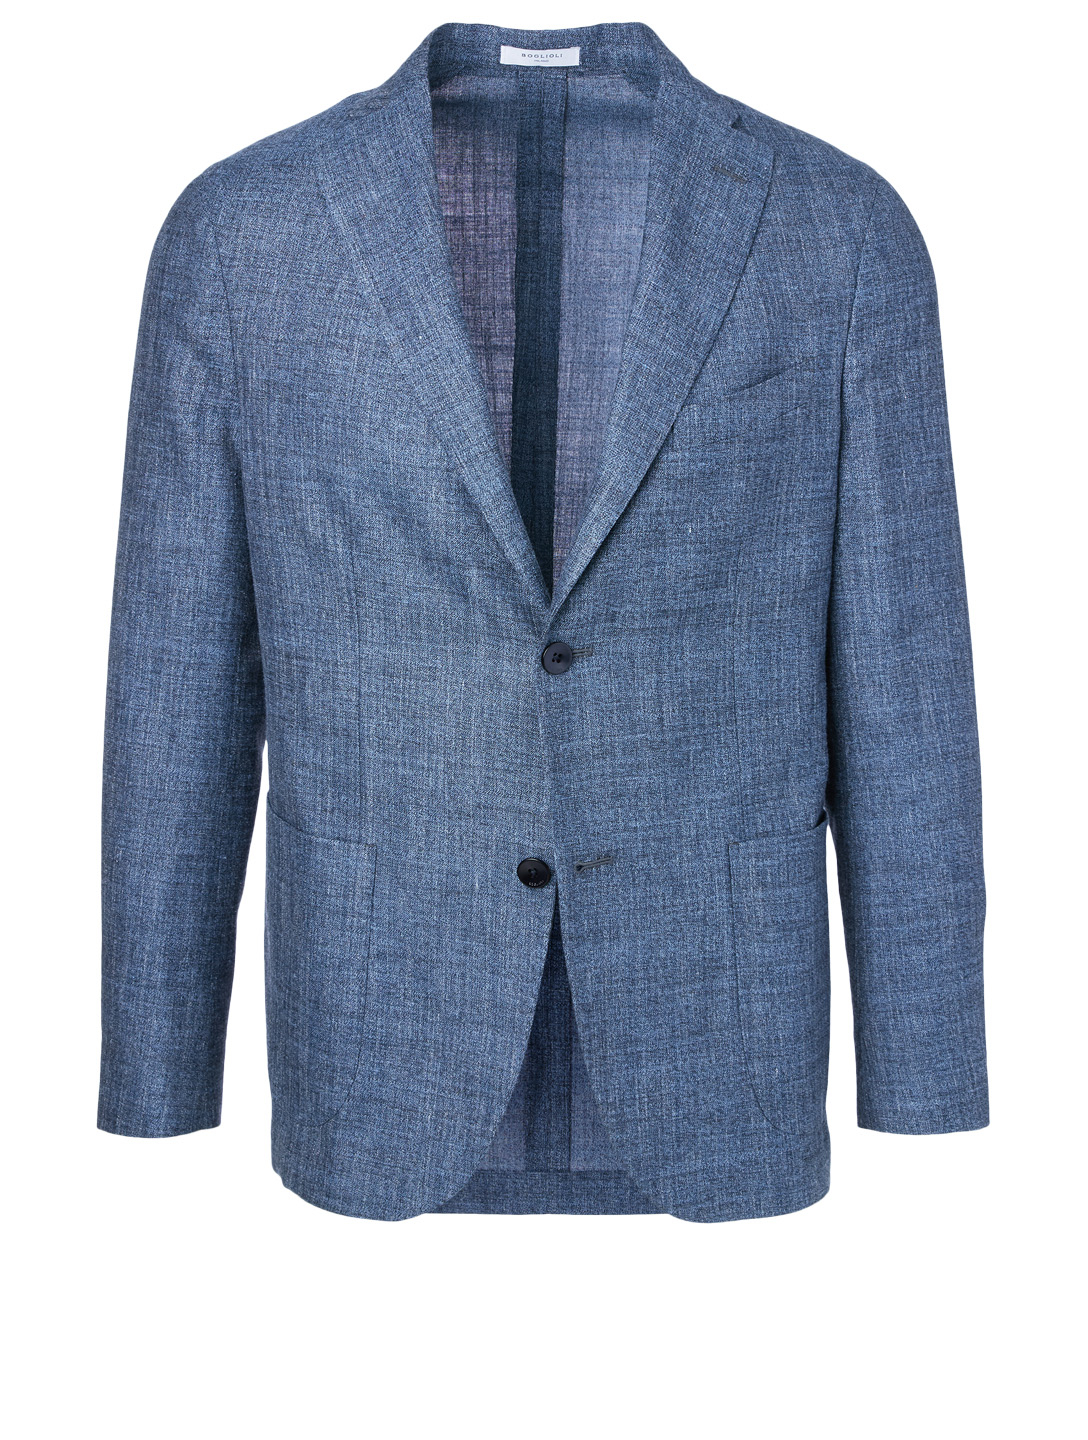 BOGLIOLI Wool, Silk And Linen K Jacket Men's Blue